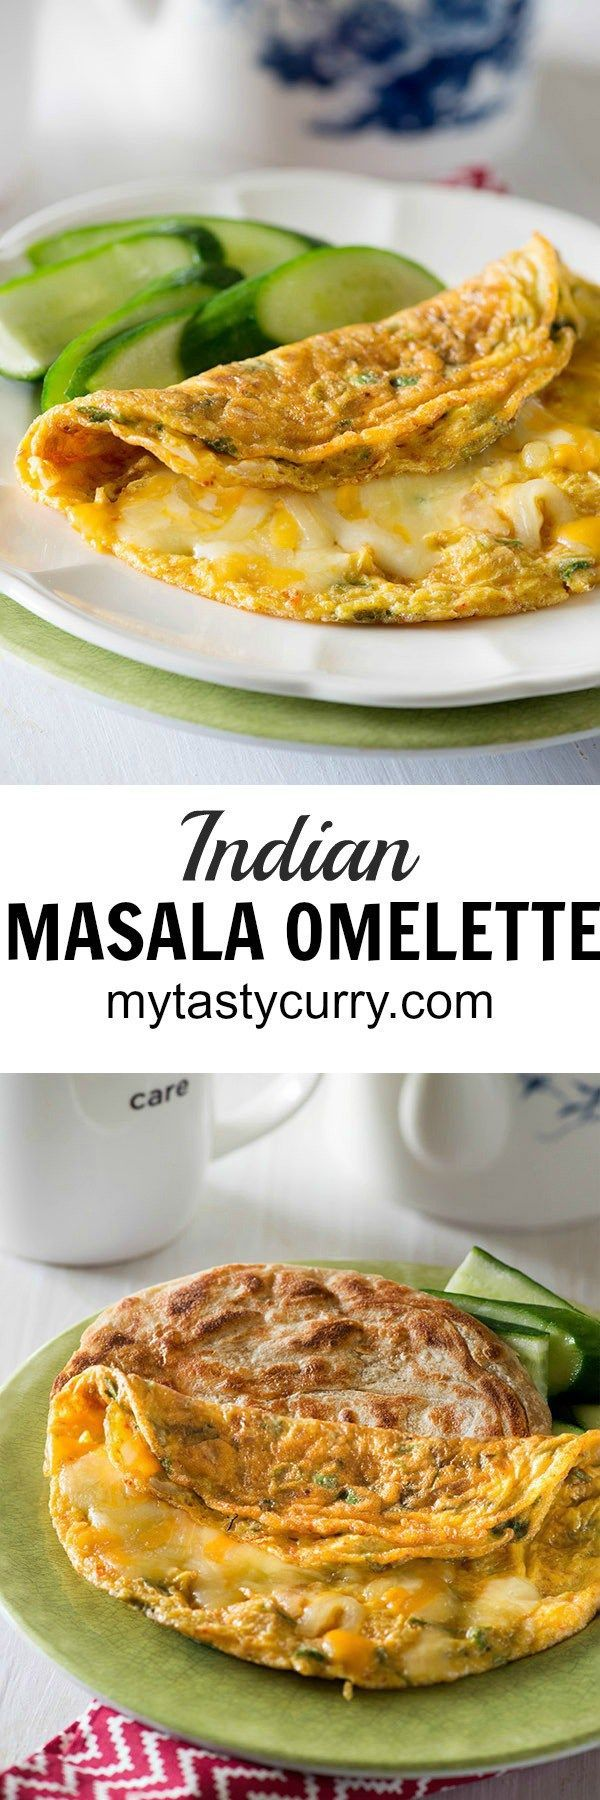 Indian Masala omelette recipe perfect for breakfast, lunch or even dinner. Eat the masala omelete on its own, or add vegetables, spices, and cheese of your choice to make it even better. Masala omelette is the easiest meal on go for me and mostly serve it